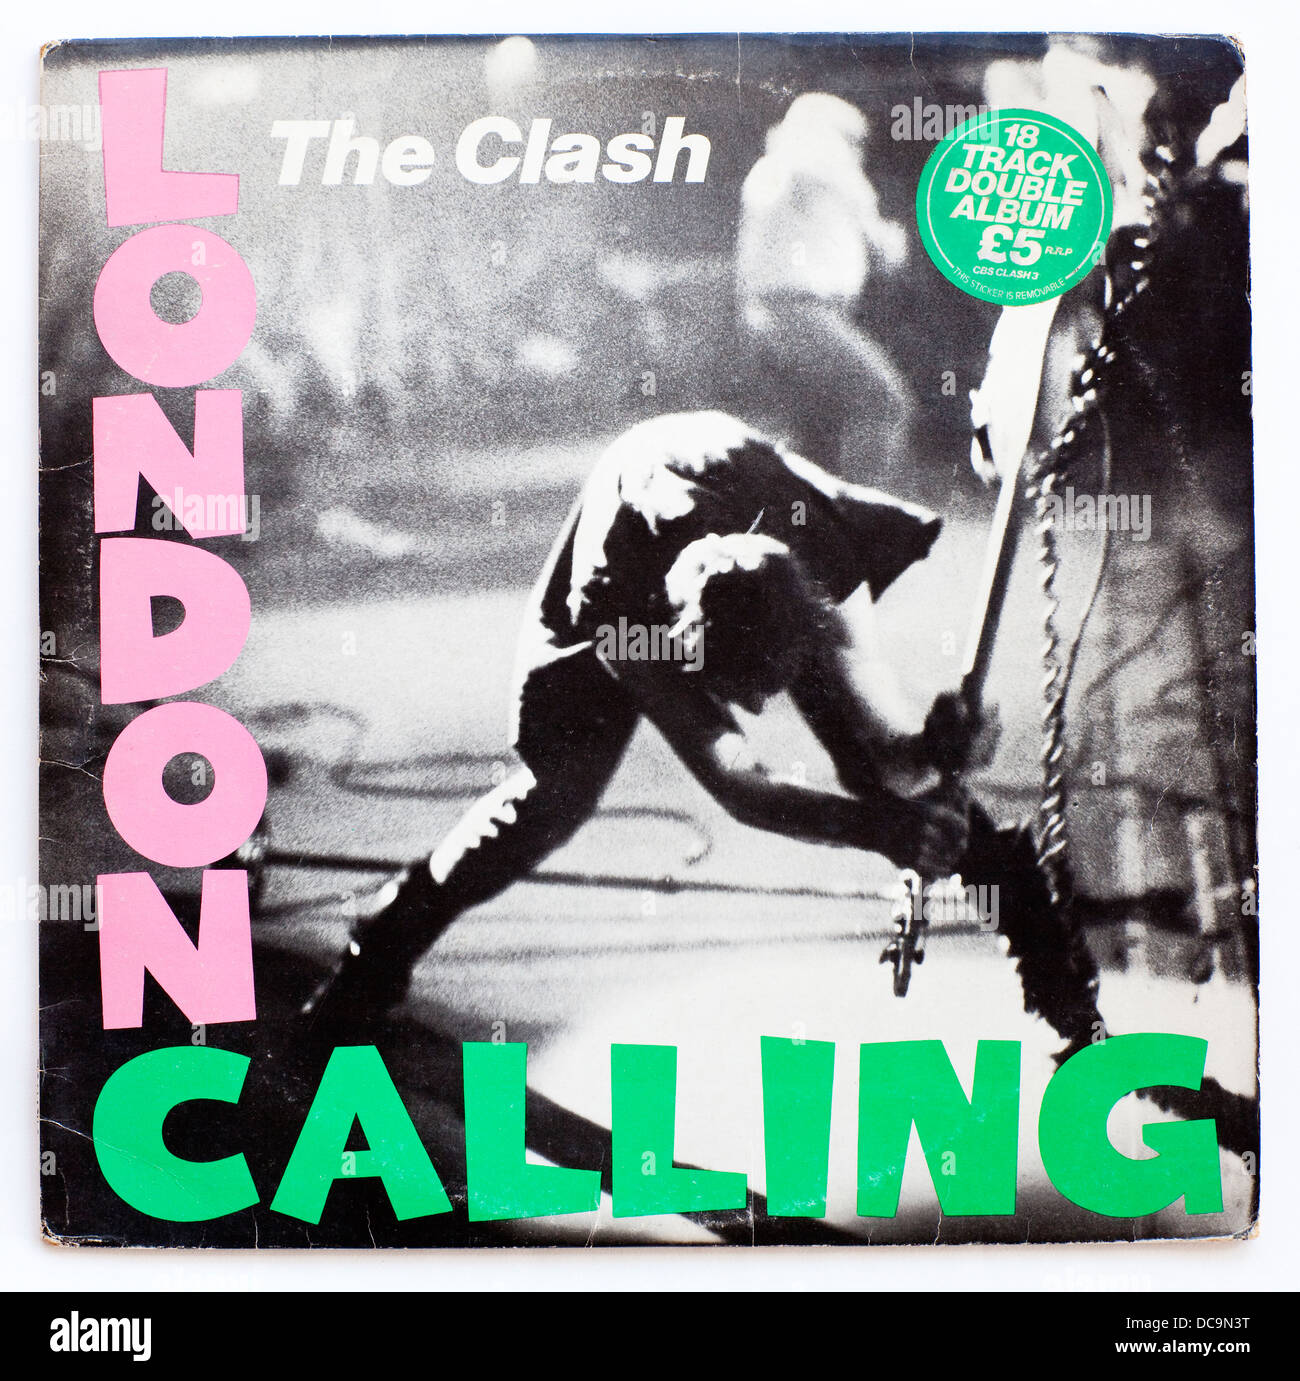 The Clash - London Calling, 1979 double album on CBS Records - Stock Image